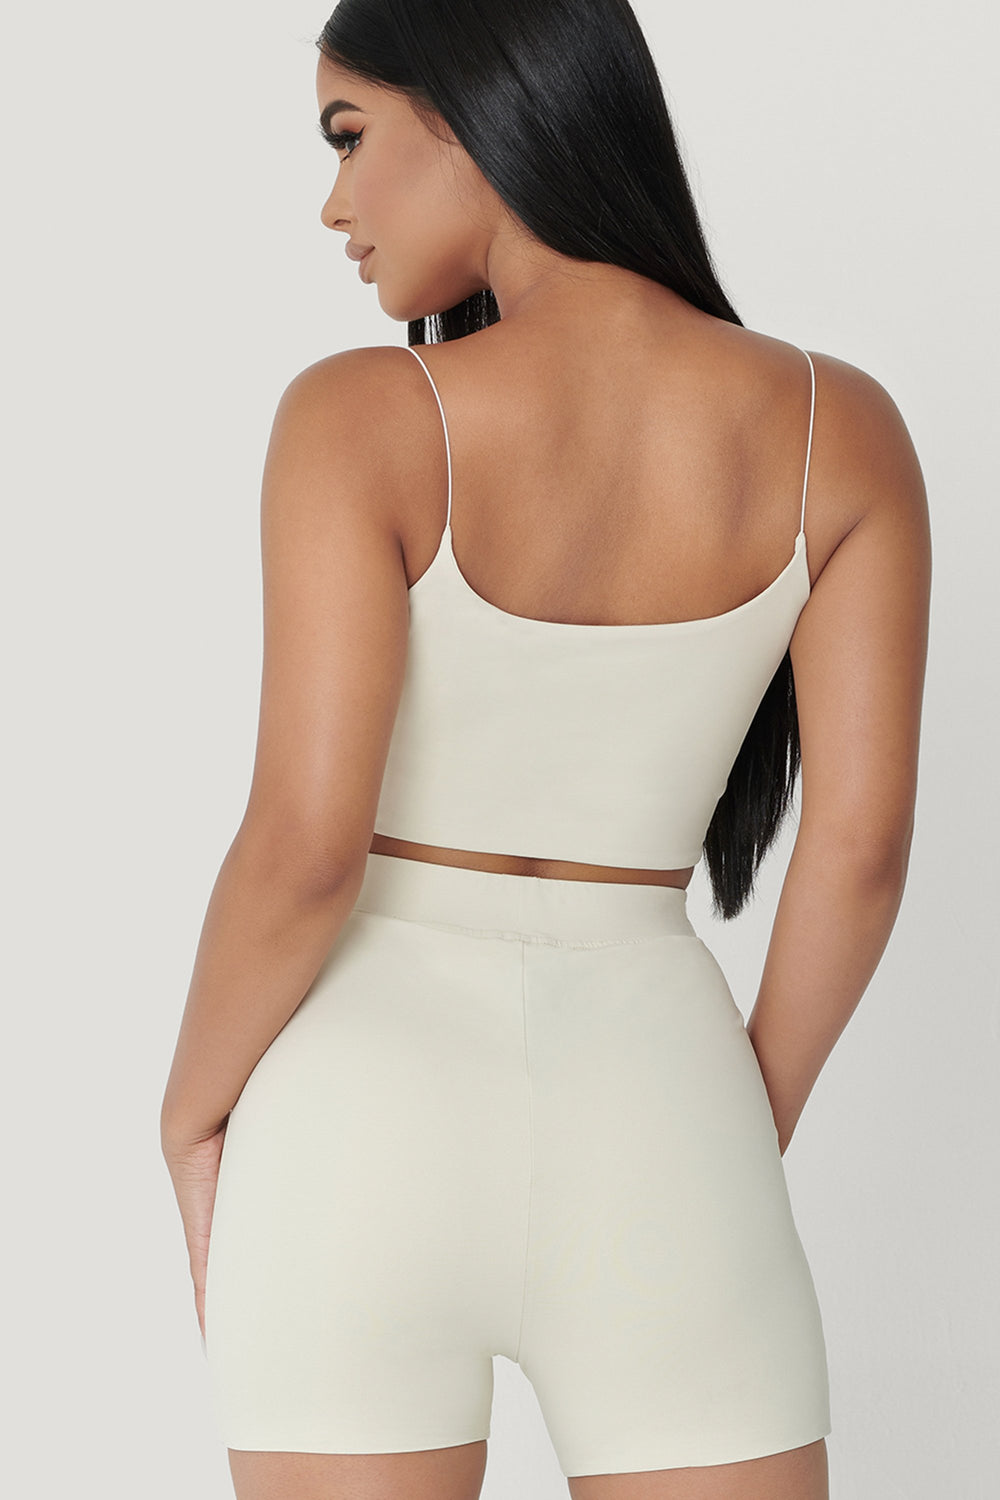 Kaiya Thin Strap Scoop Neck Crop Top - Sand - MESHKI